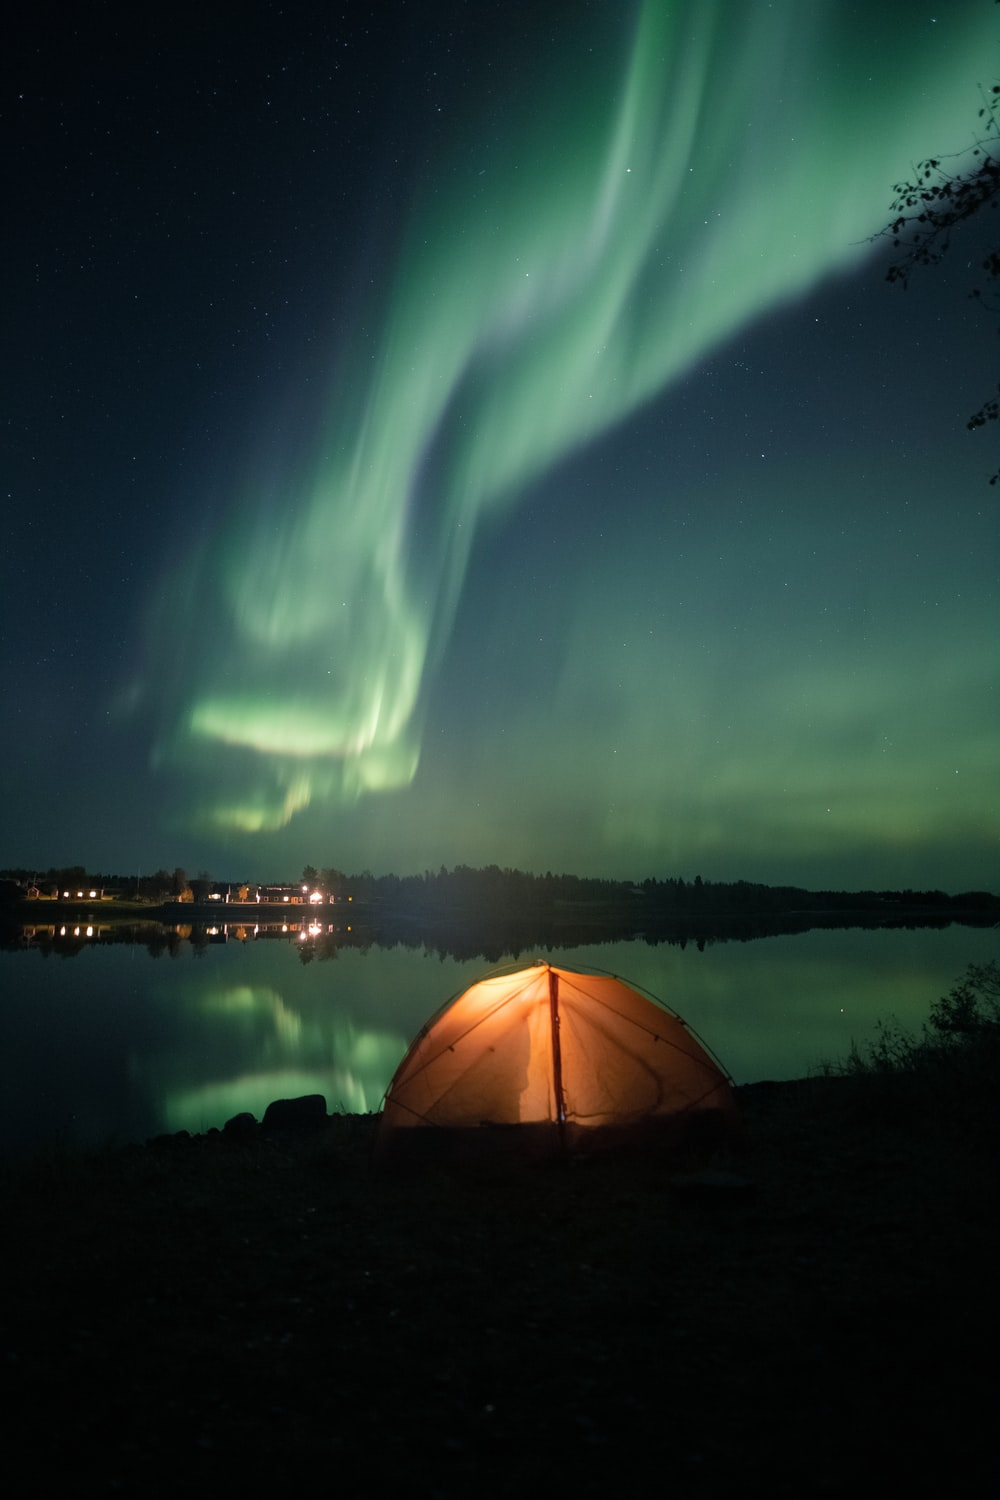 white tent near body of water during night time